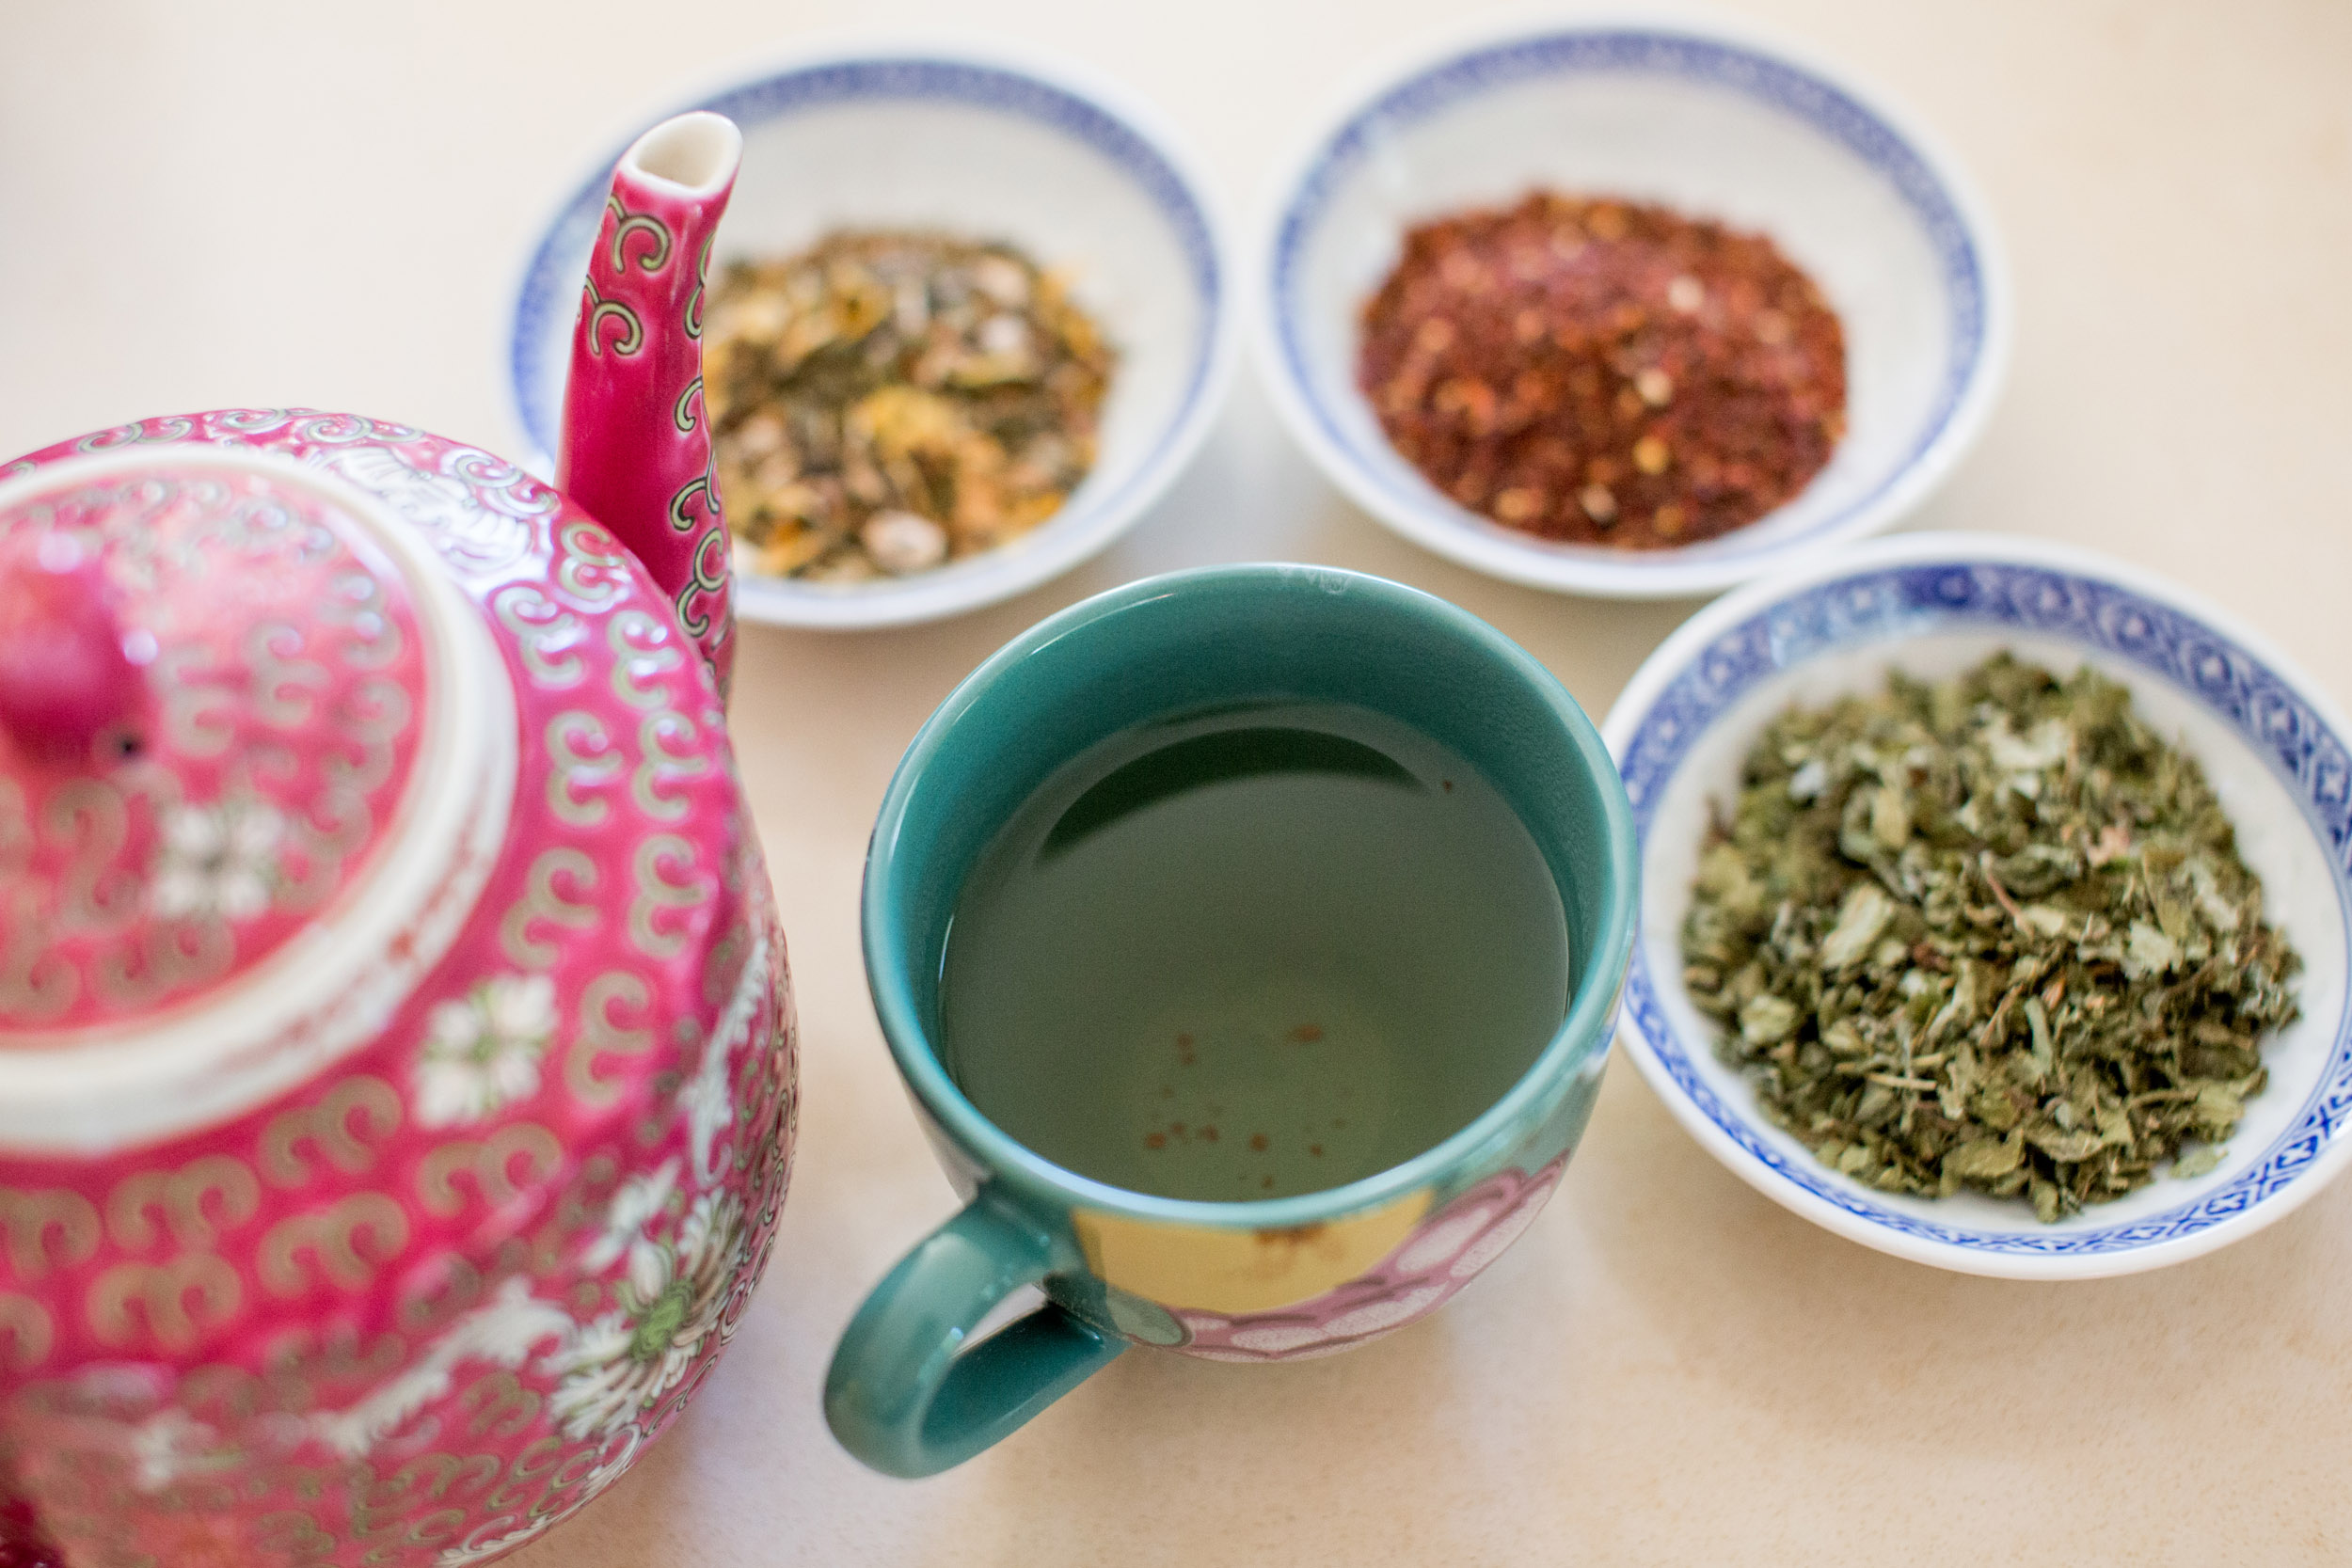 herbal-tea-health-coach-personal-brand-photography.jpg